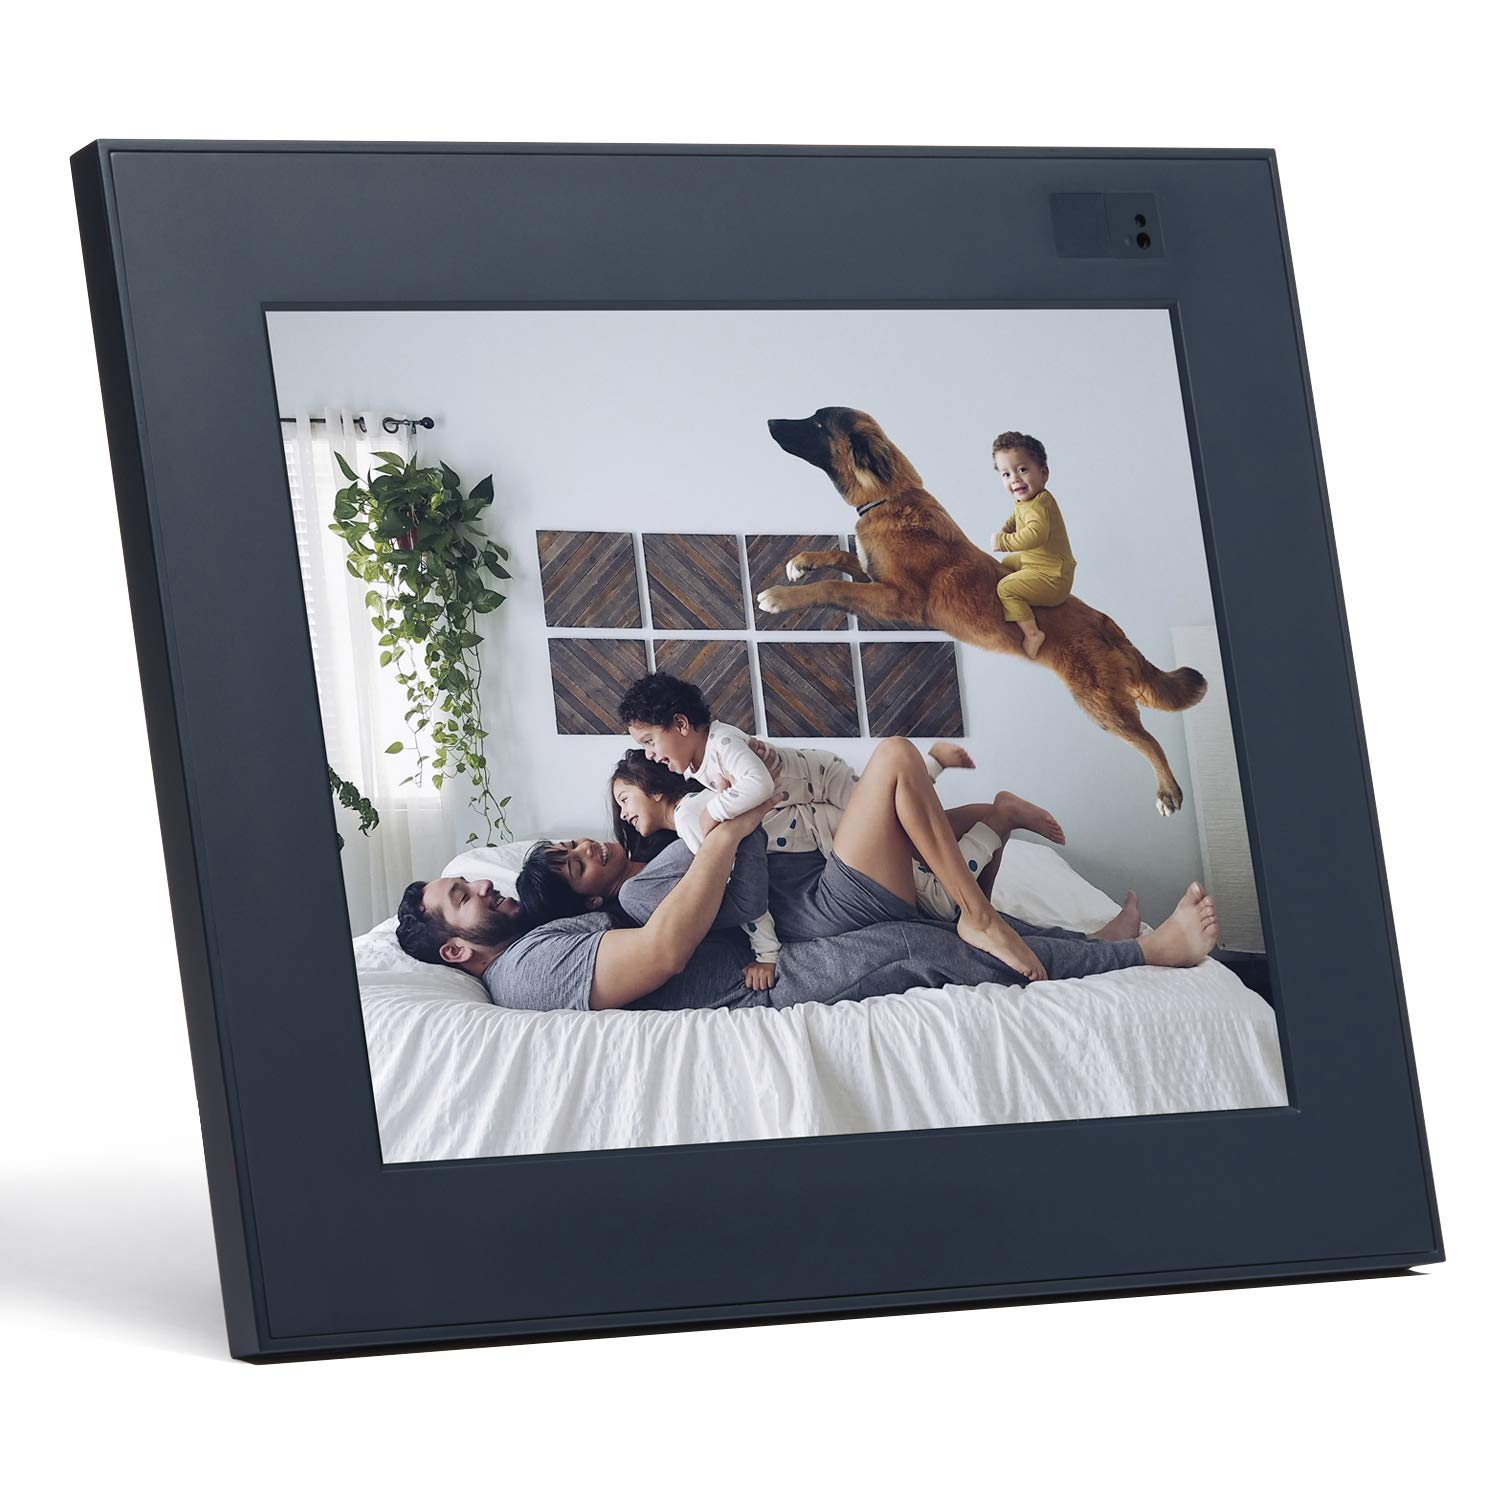 Aura Digital Photo Frame, 10'' HD Display, 2048 x 1536 Resolution with Free Cloud Storage, Oprah's Favorite Things List 2018, Slate WiFi Picture Frame by Aura